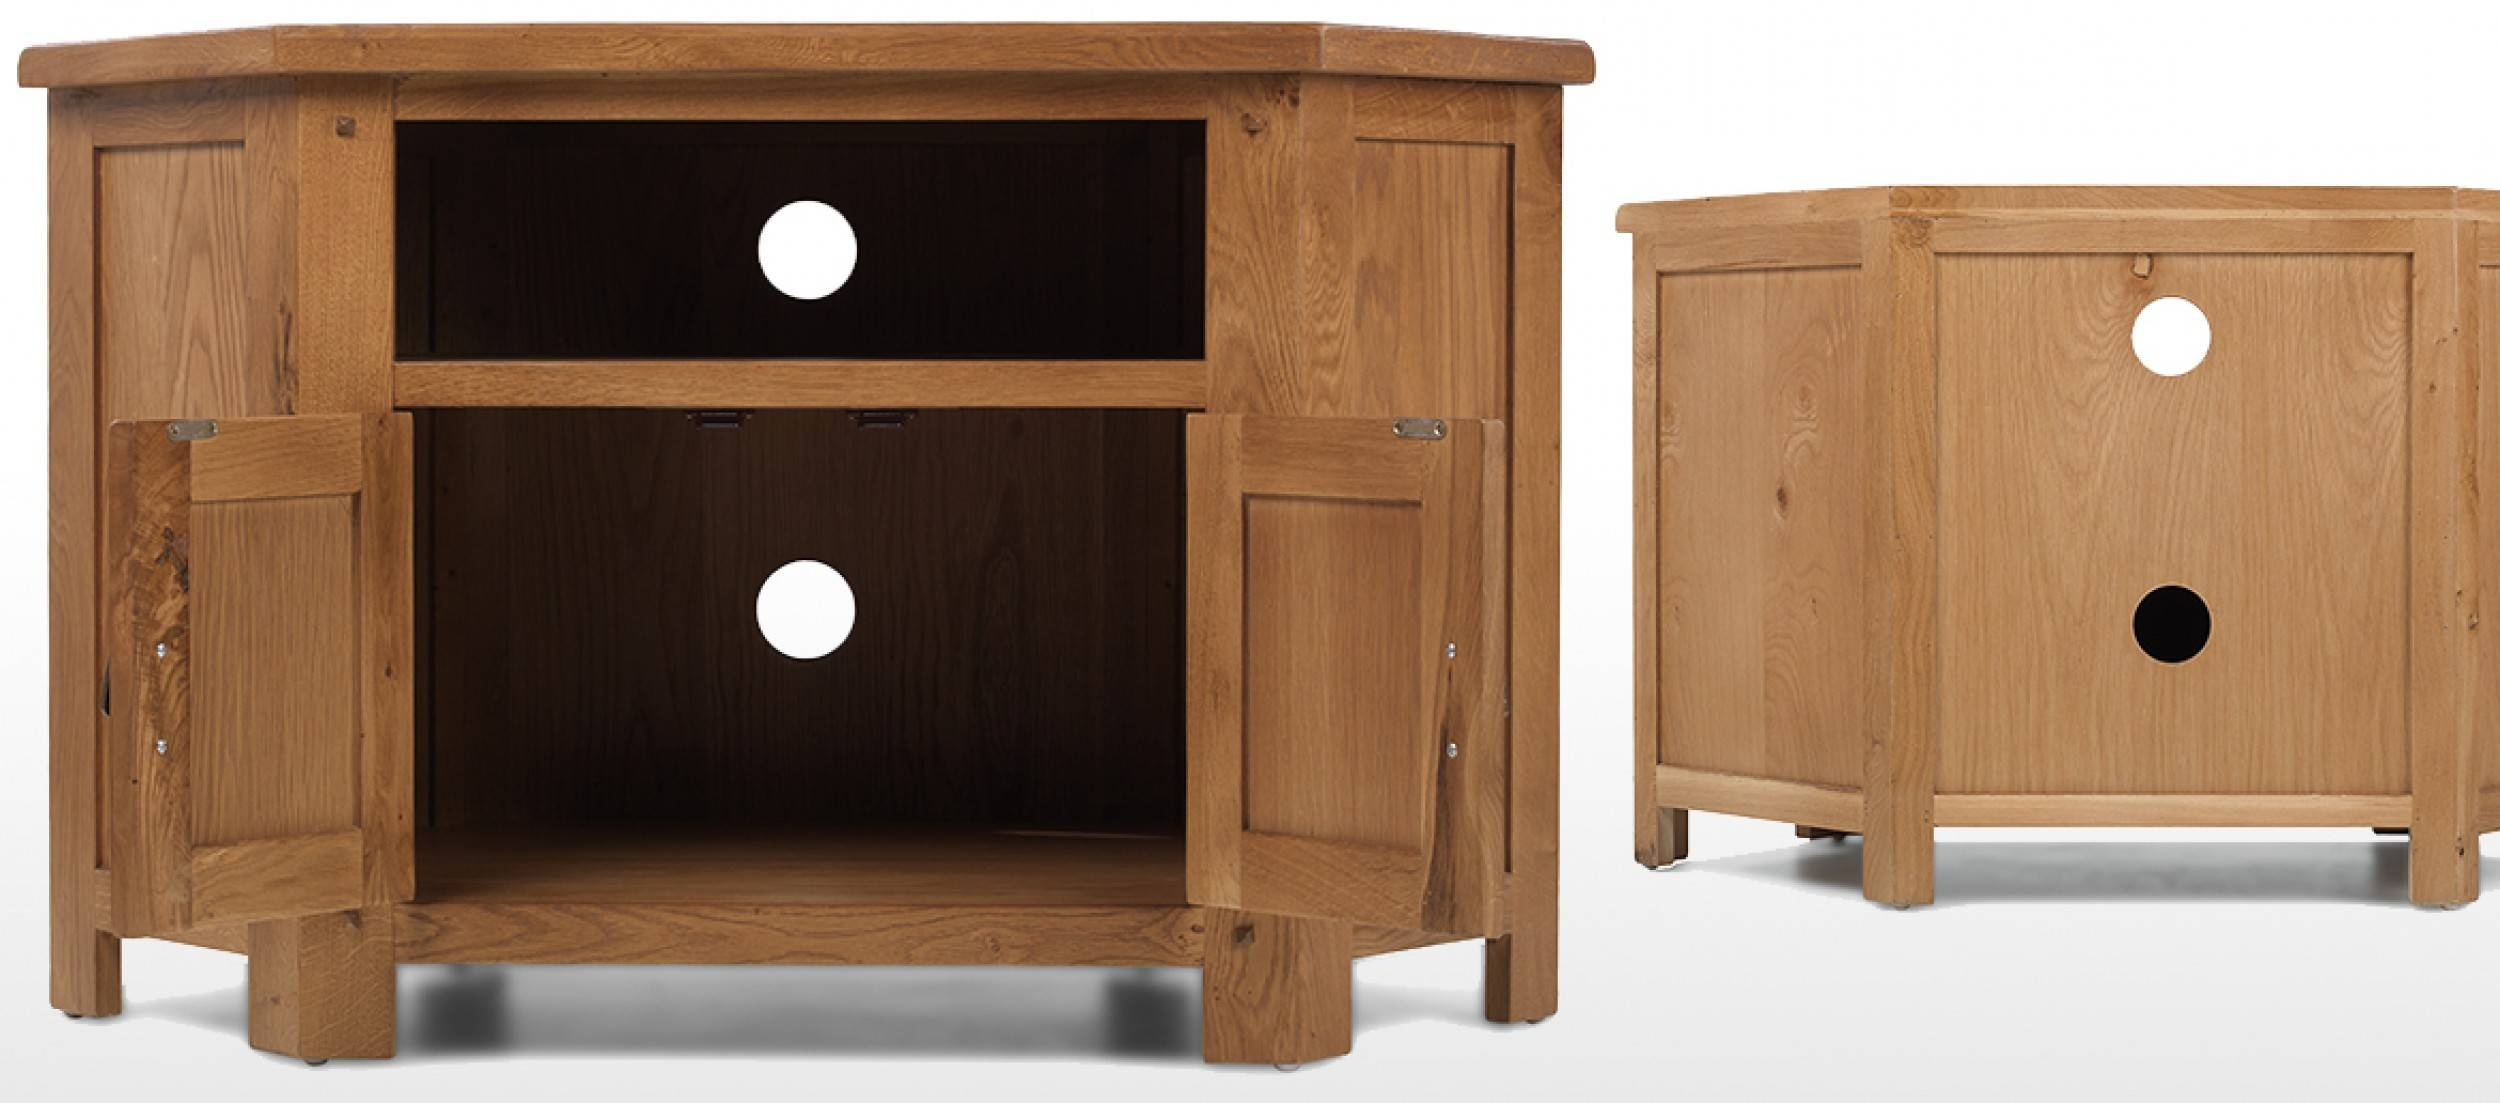 Rustic Oak Corner Tv Cabinet | Quercus Living Pertaining To Rustic Pine Tv Cabinets (View 14 of 15)